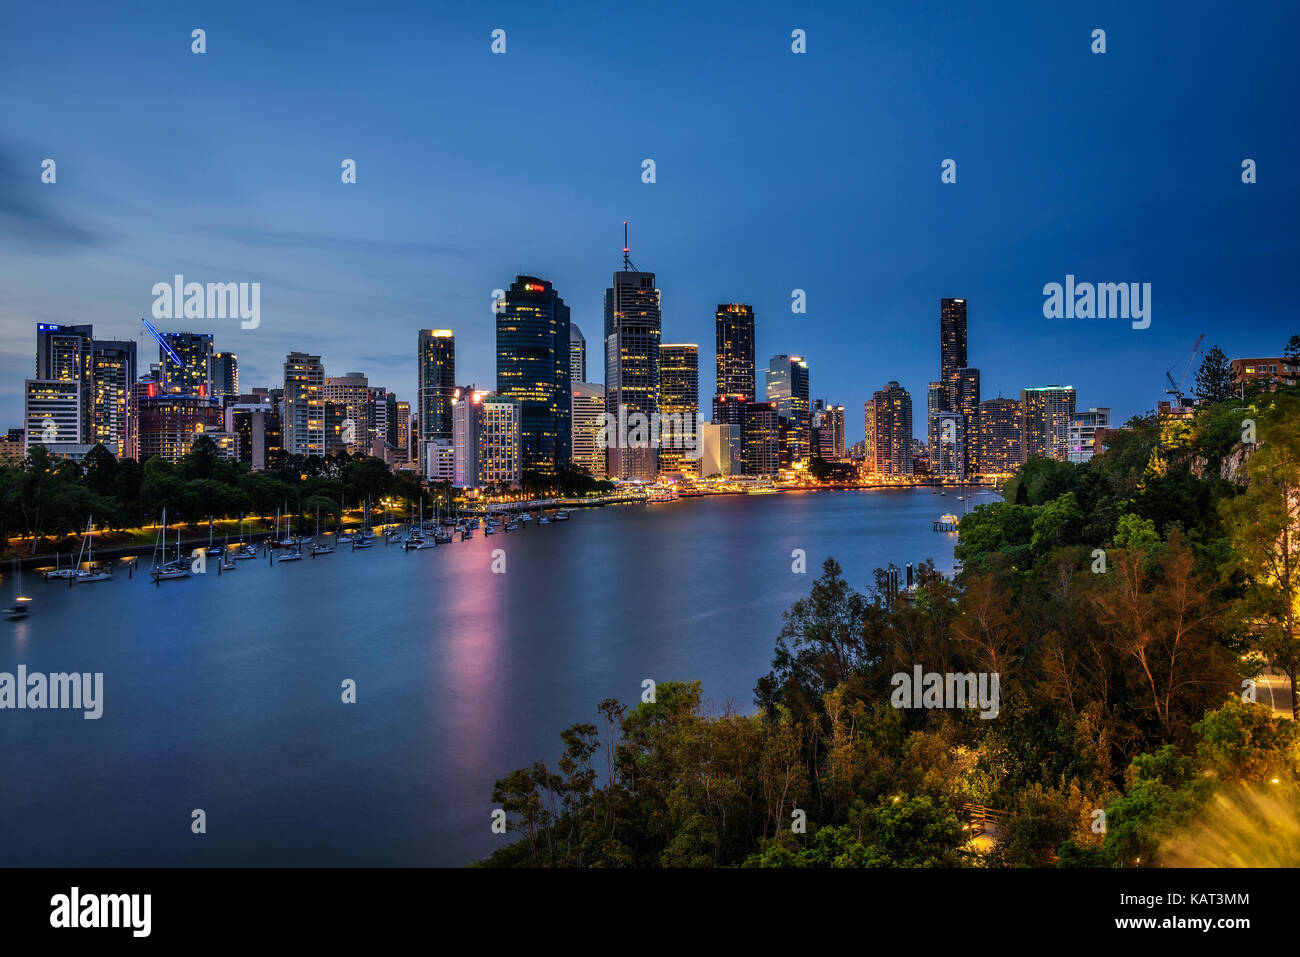 Night skyline of Brisbane city and Brisbane river  from Kangaroo Point Cliffs, Queensland, Australia. - Stock Image